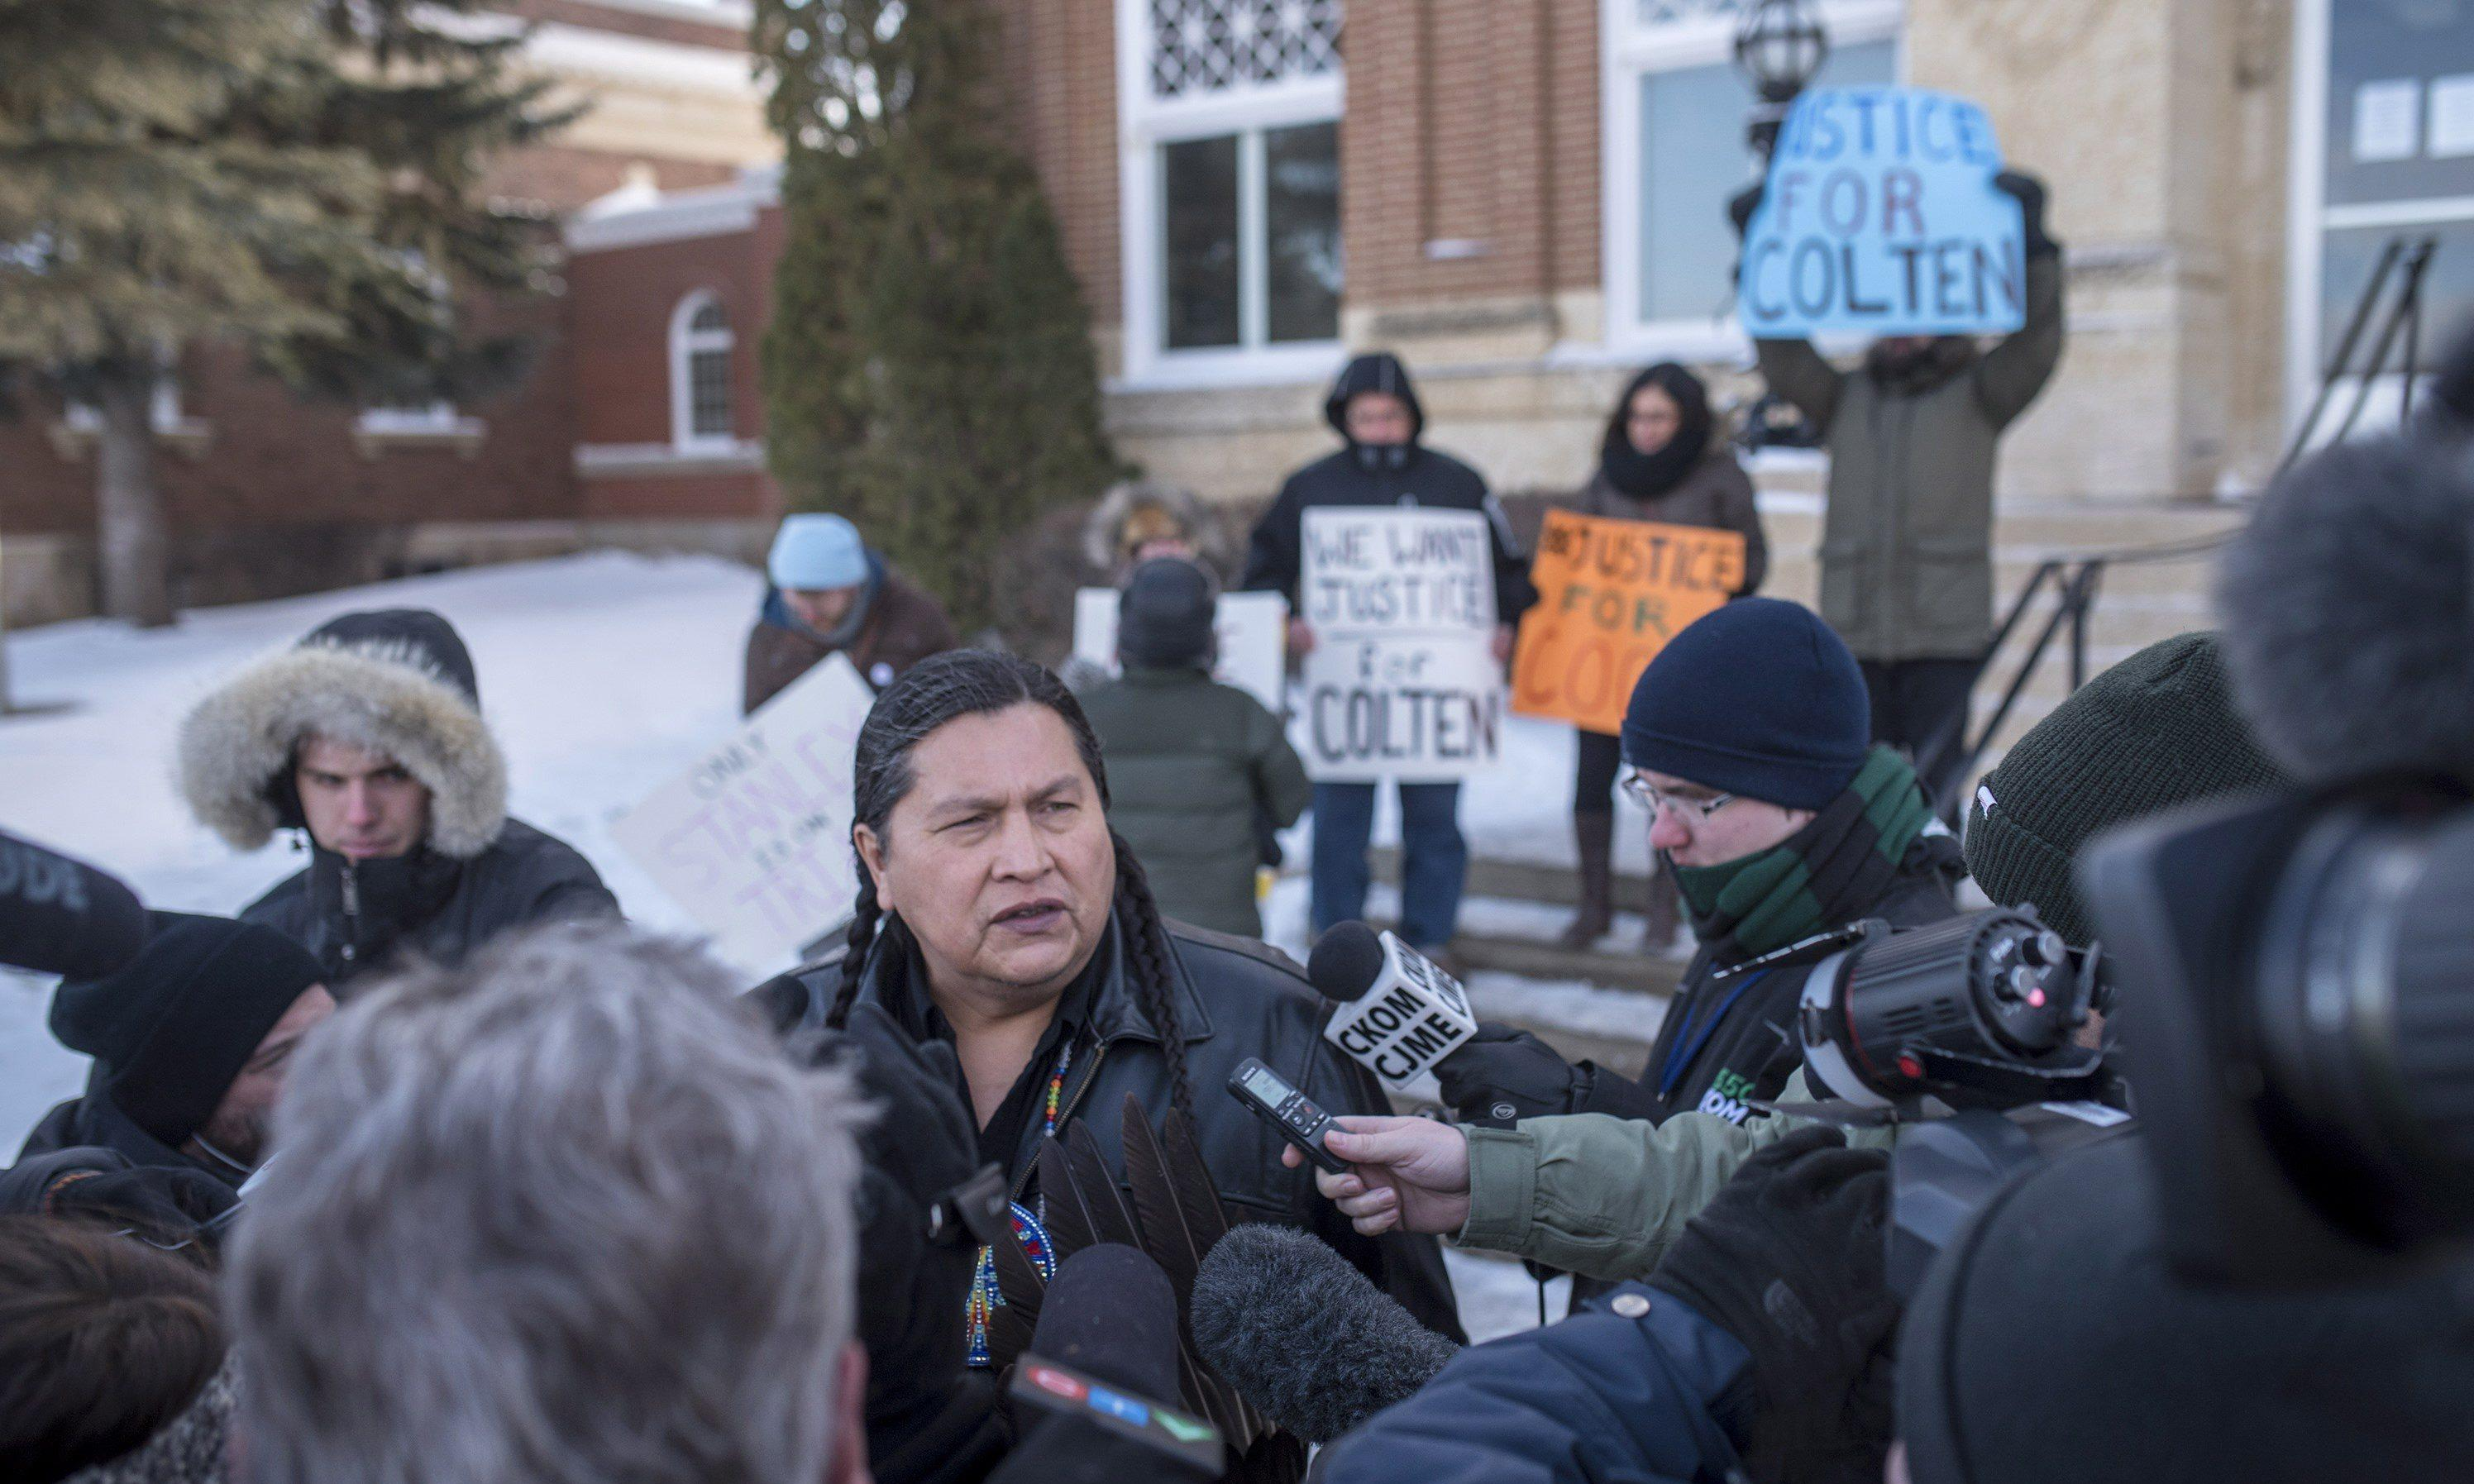 Canada: indigenous groups urge reform after shock of white farmer's acquittal